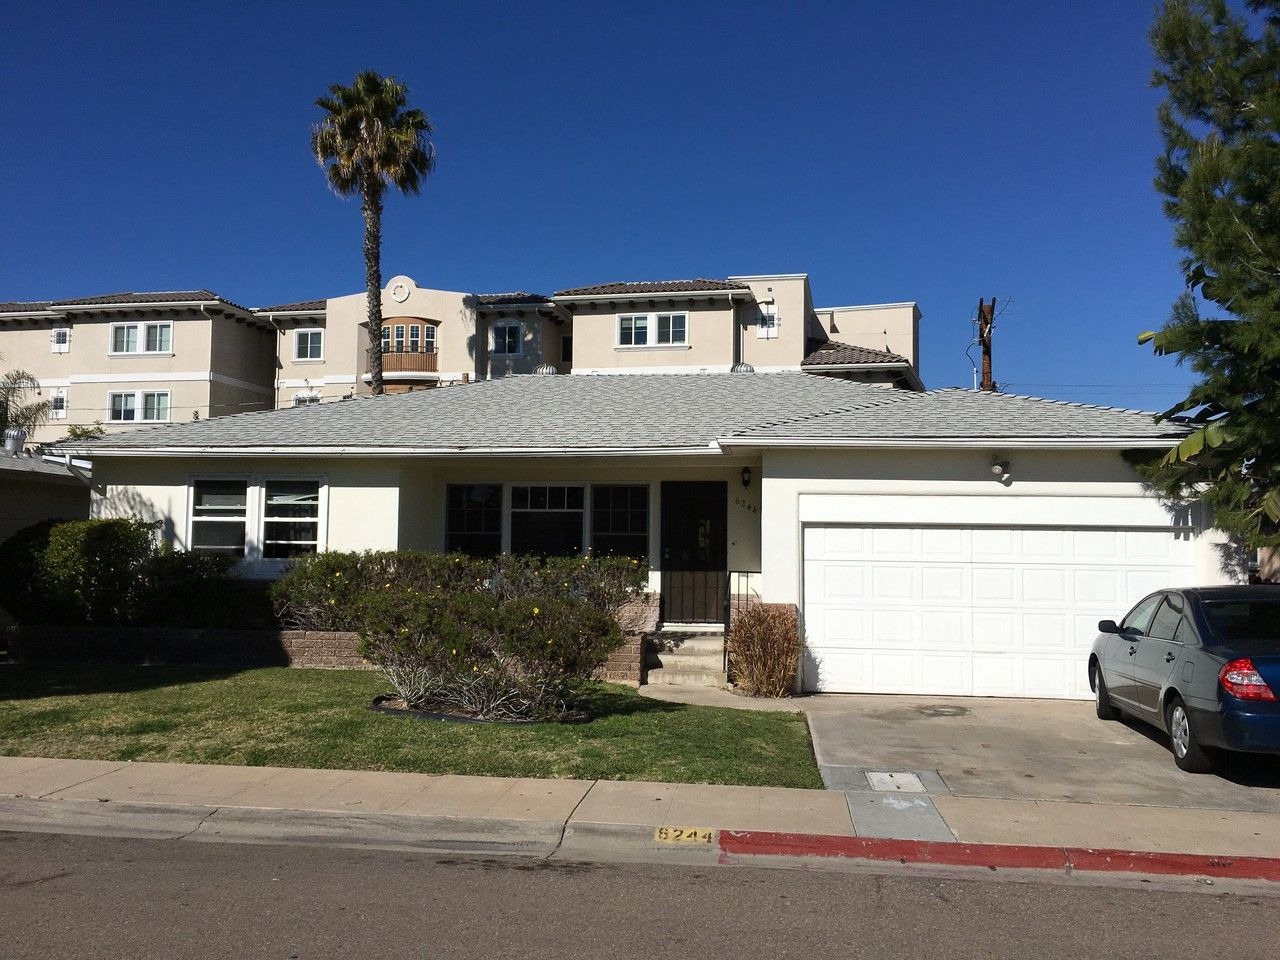 6244 mary ln dr san diego ca 92115 5 bedroom house for - 2 bedroom homes for rent in san diego ...